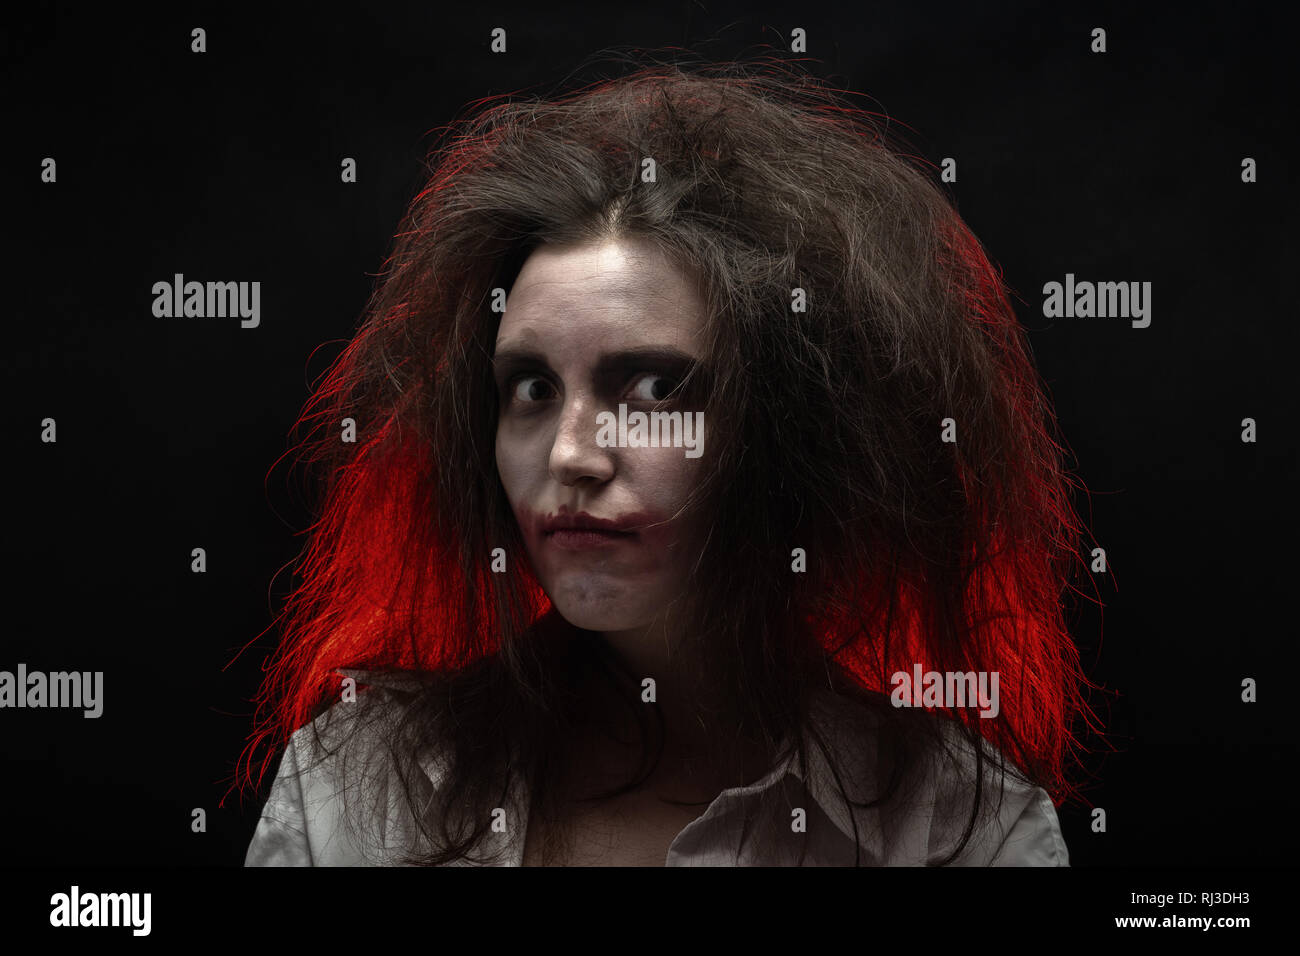 fun crazy young woman with fluffy hair on black background make shy grimace - Stock Image